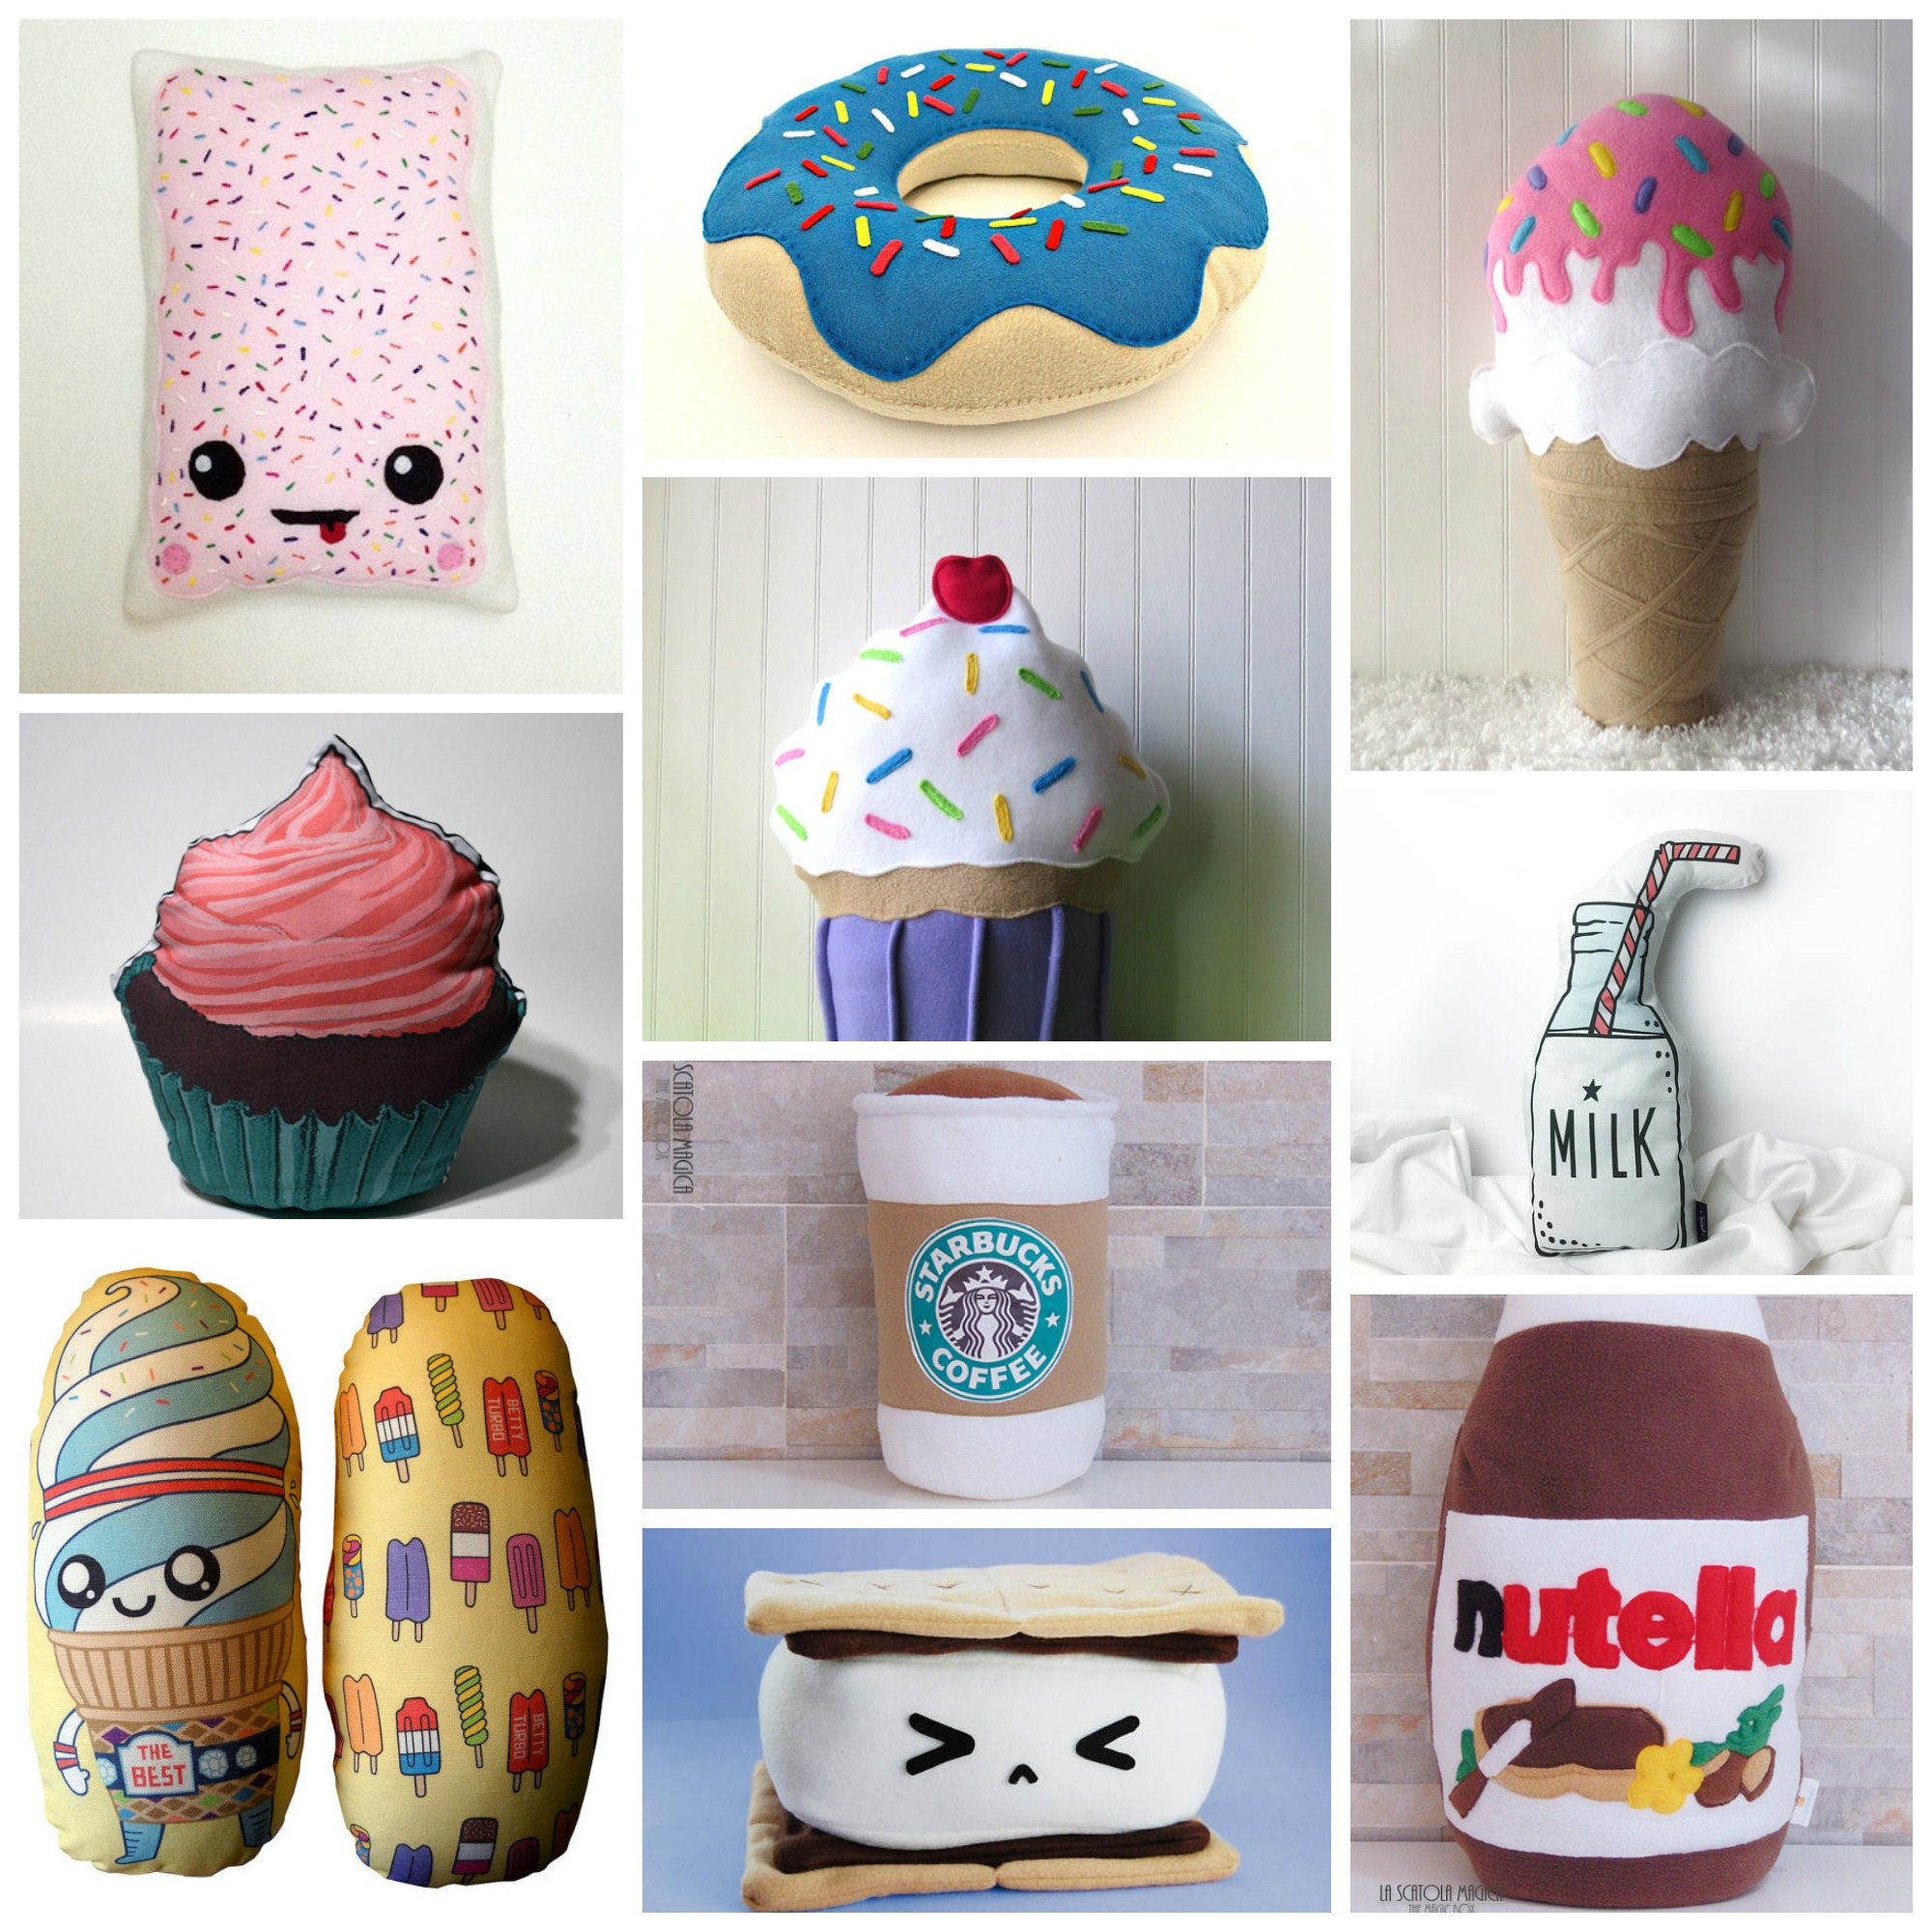 Top 10: Cutest Dessert Pillows for Your Home Couch or Kids Room